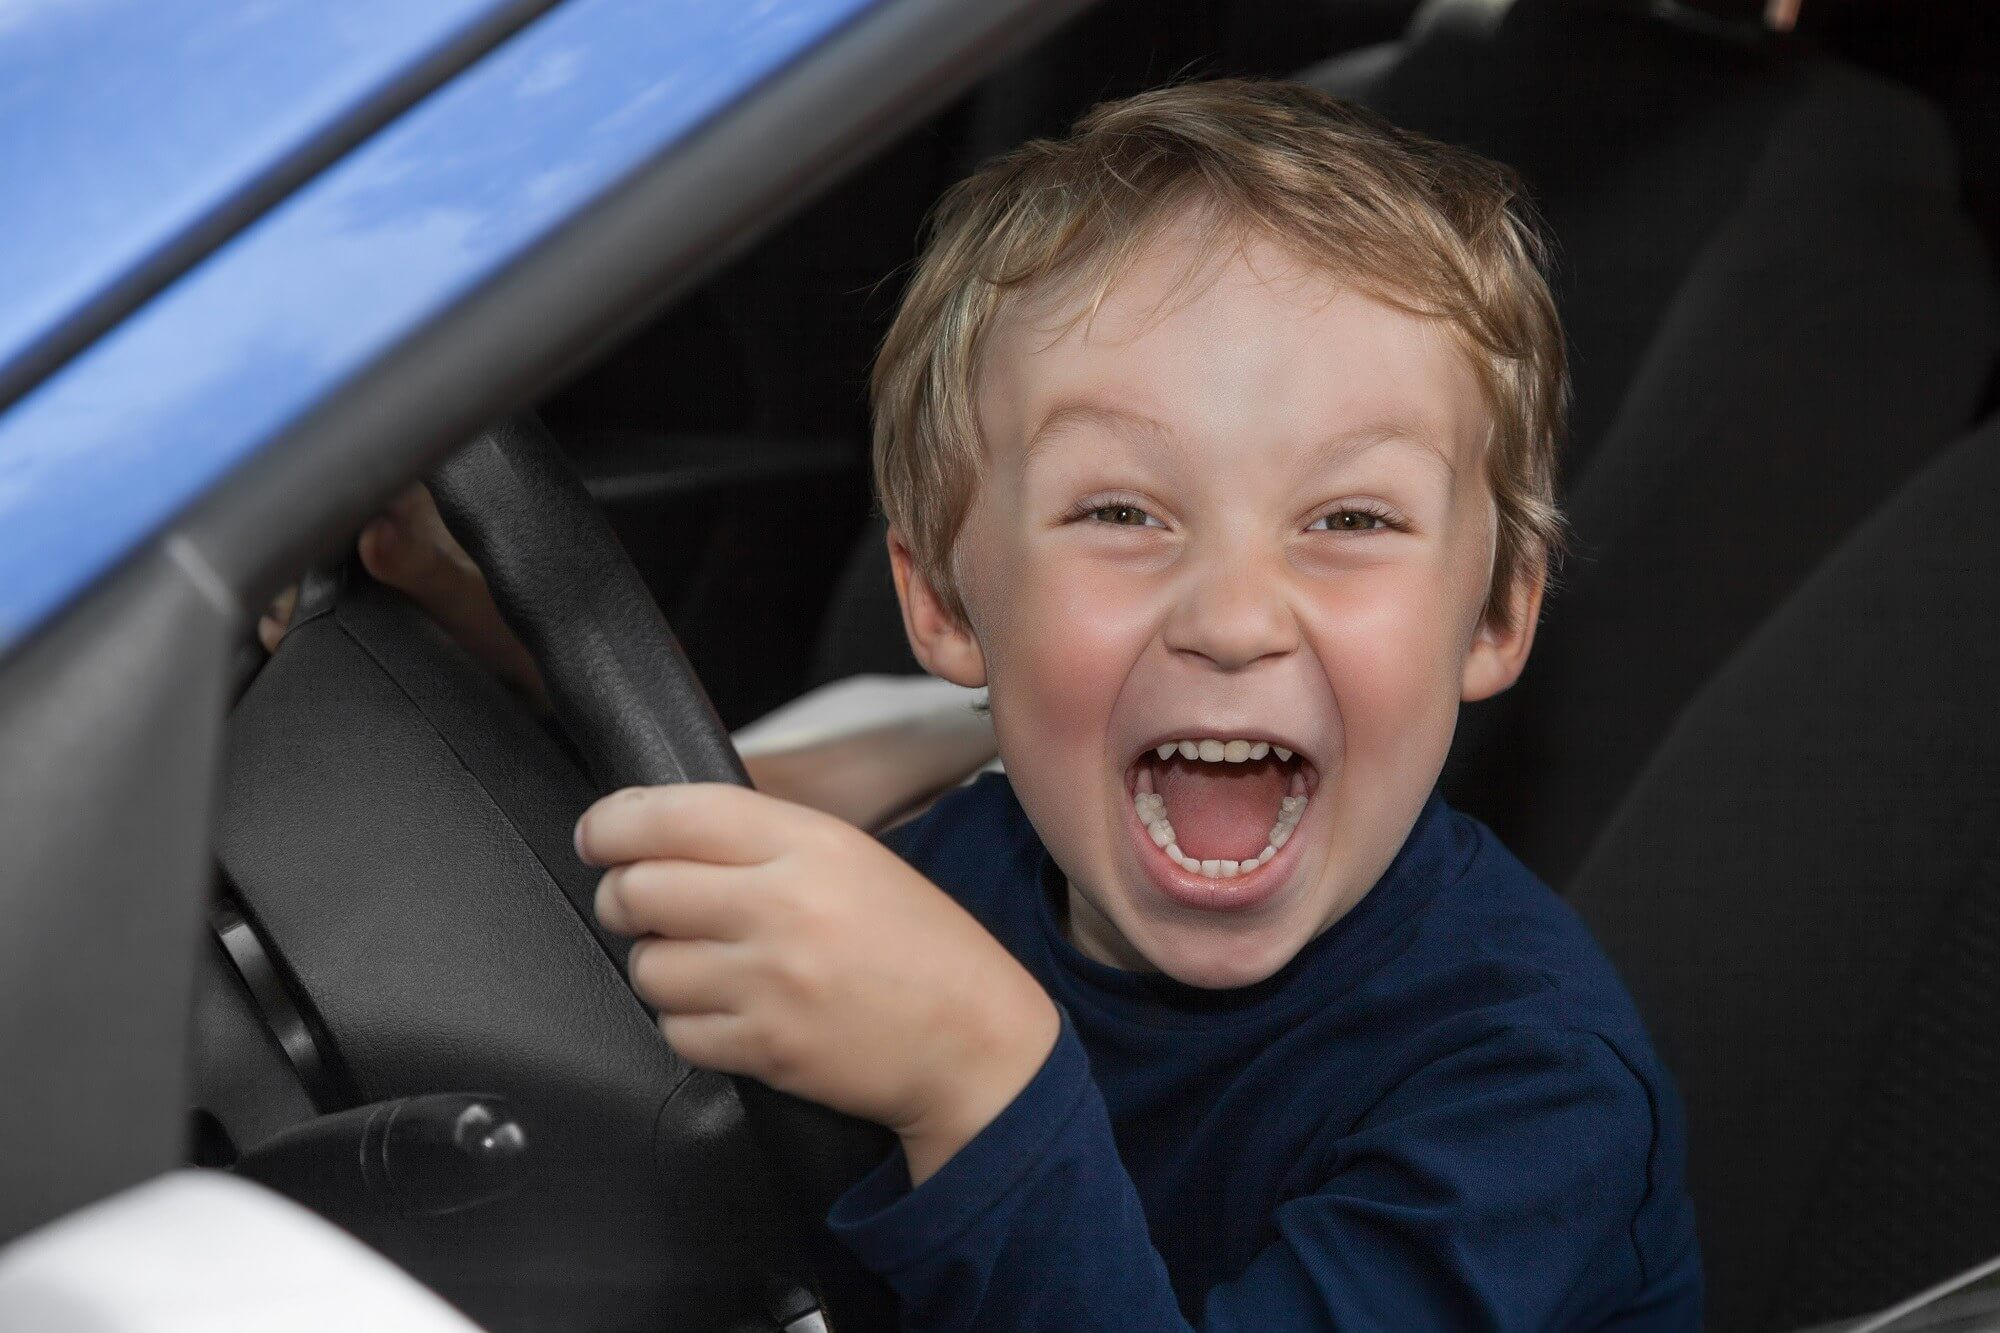 Parents allow 11-year-old to drive car because they were sick of him playing GTA all day